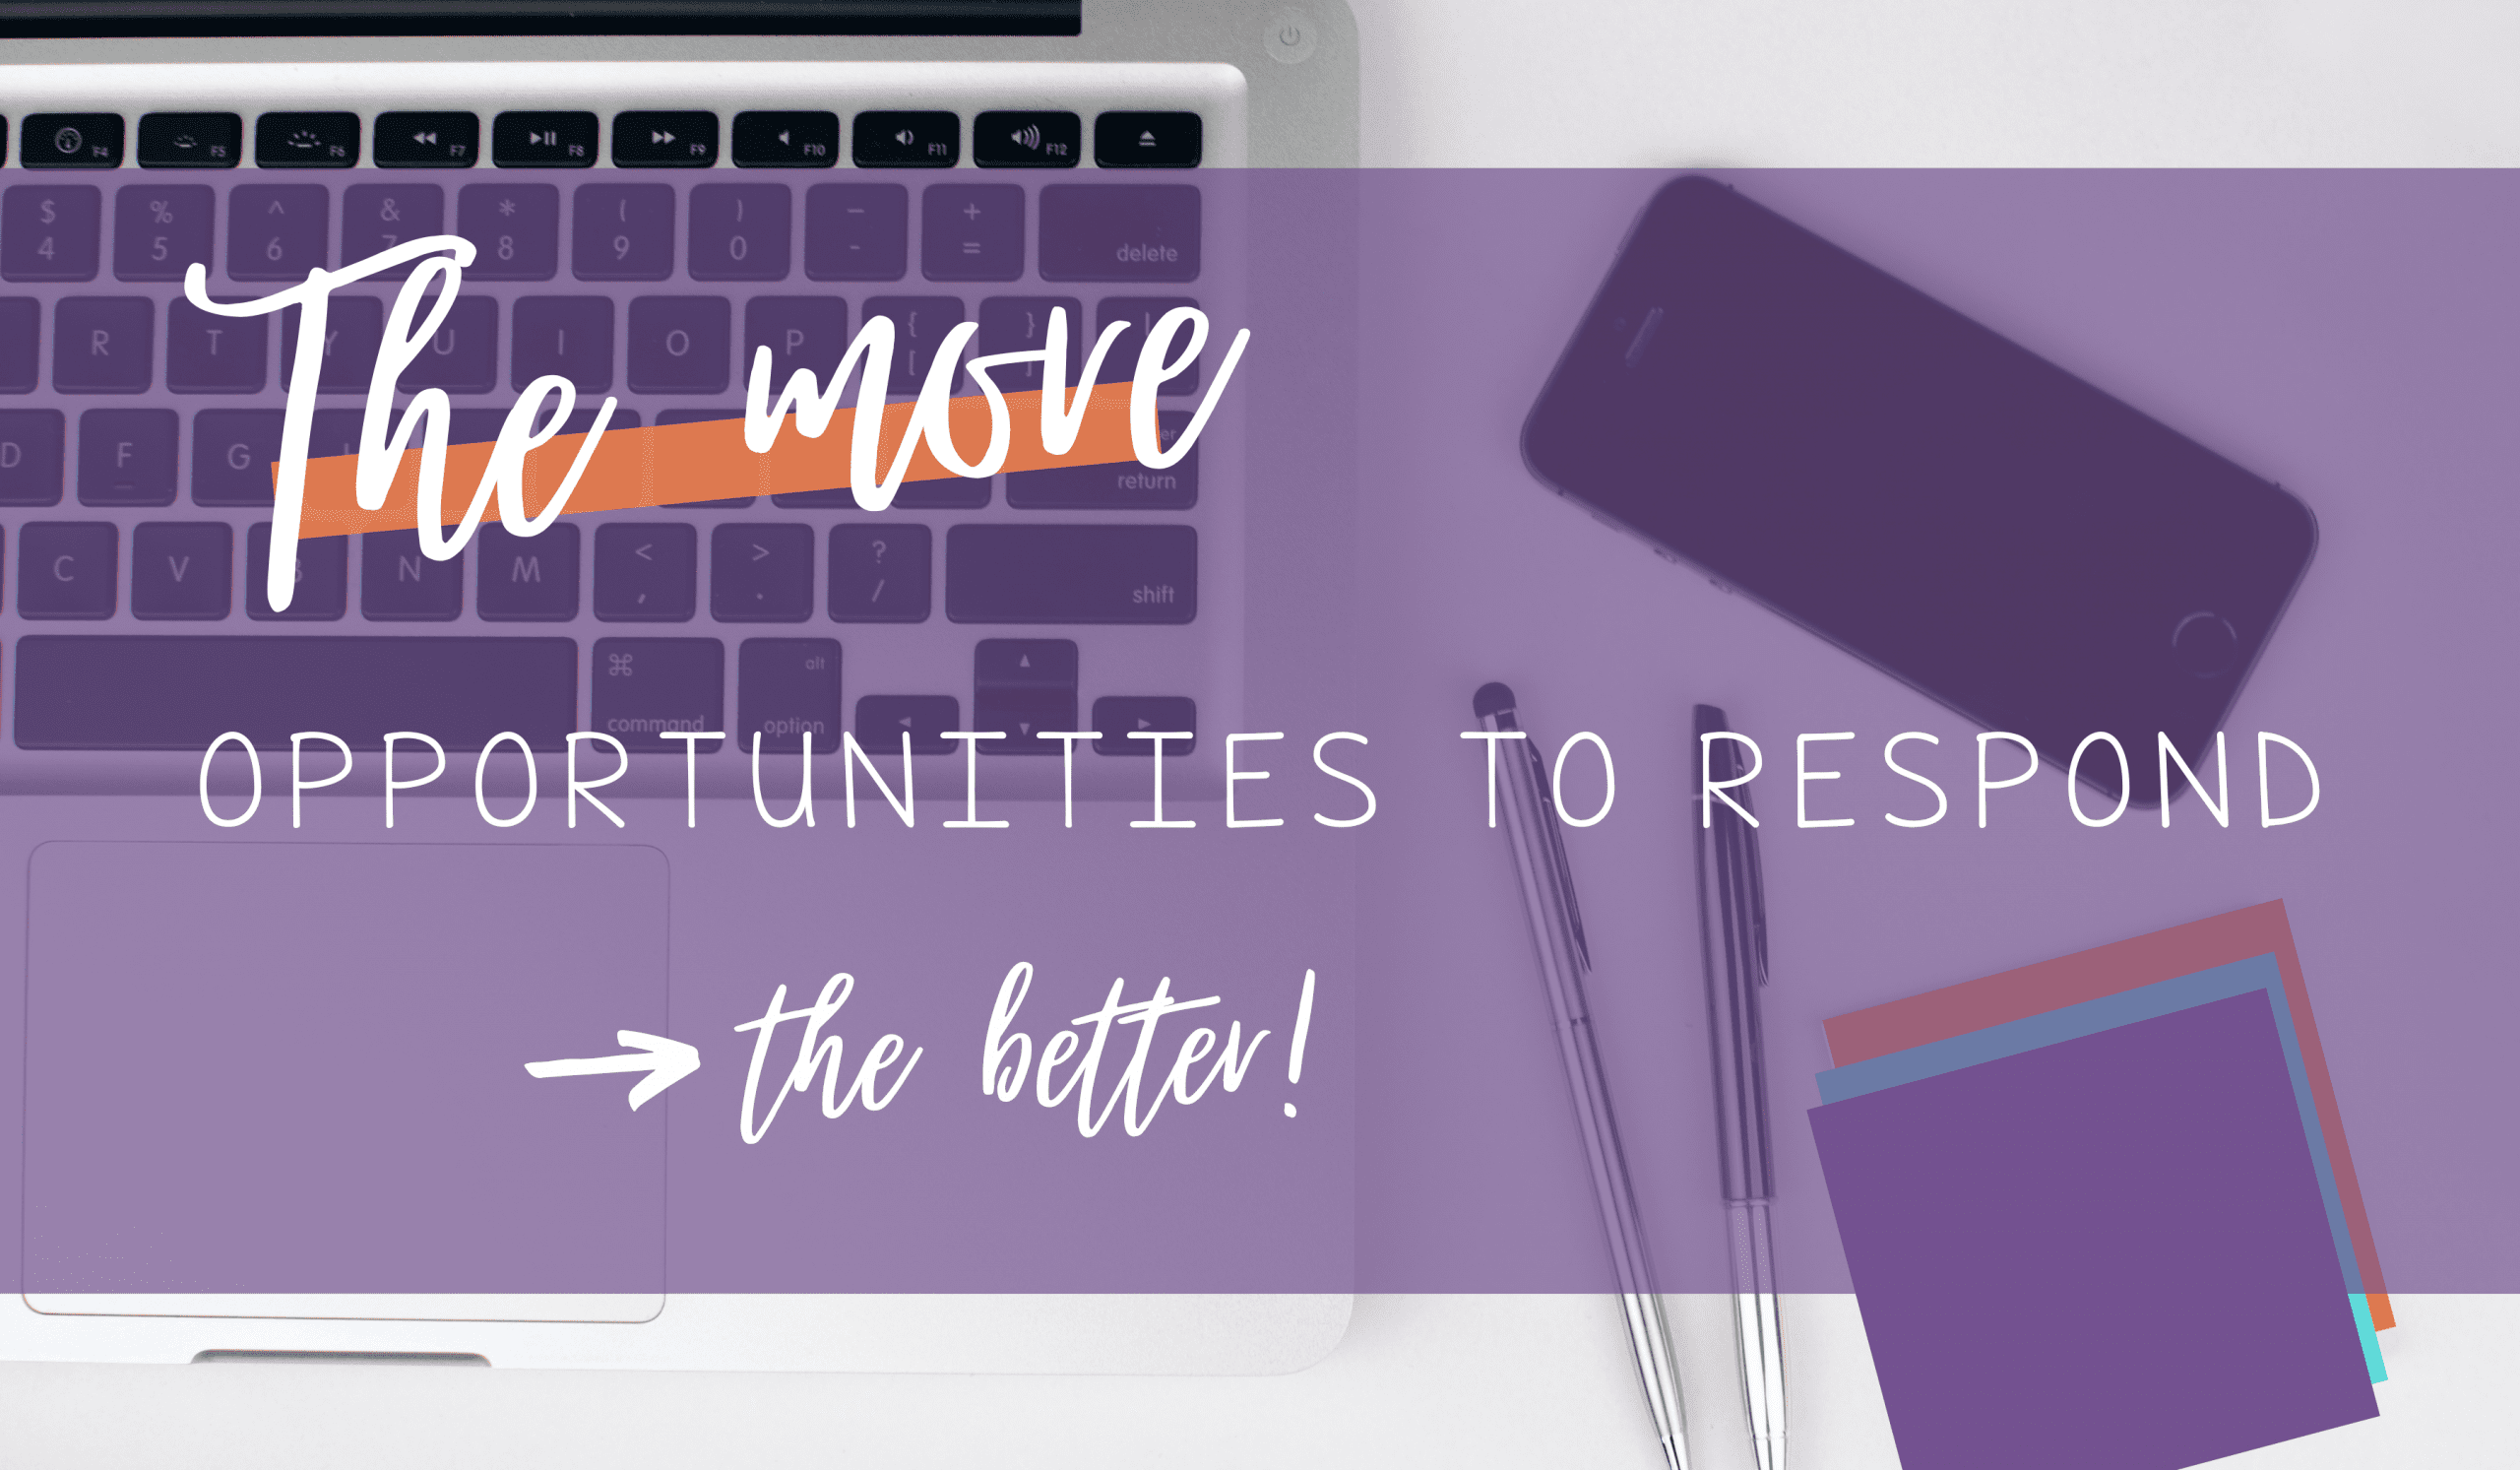 The-More-Opportunities-to-Respond-the-Better